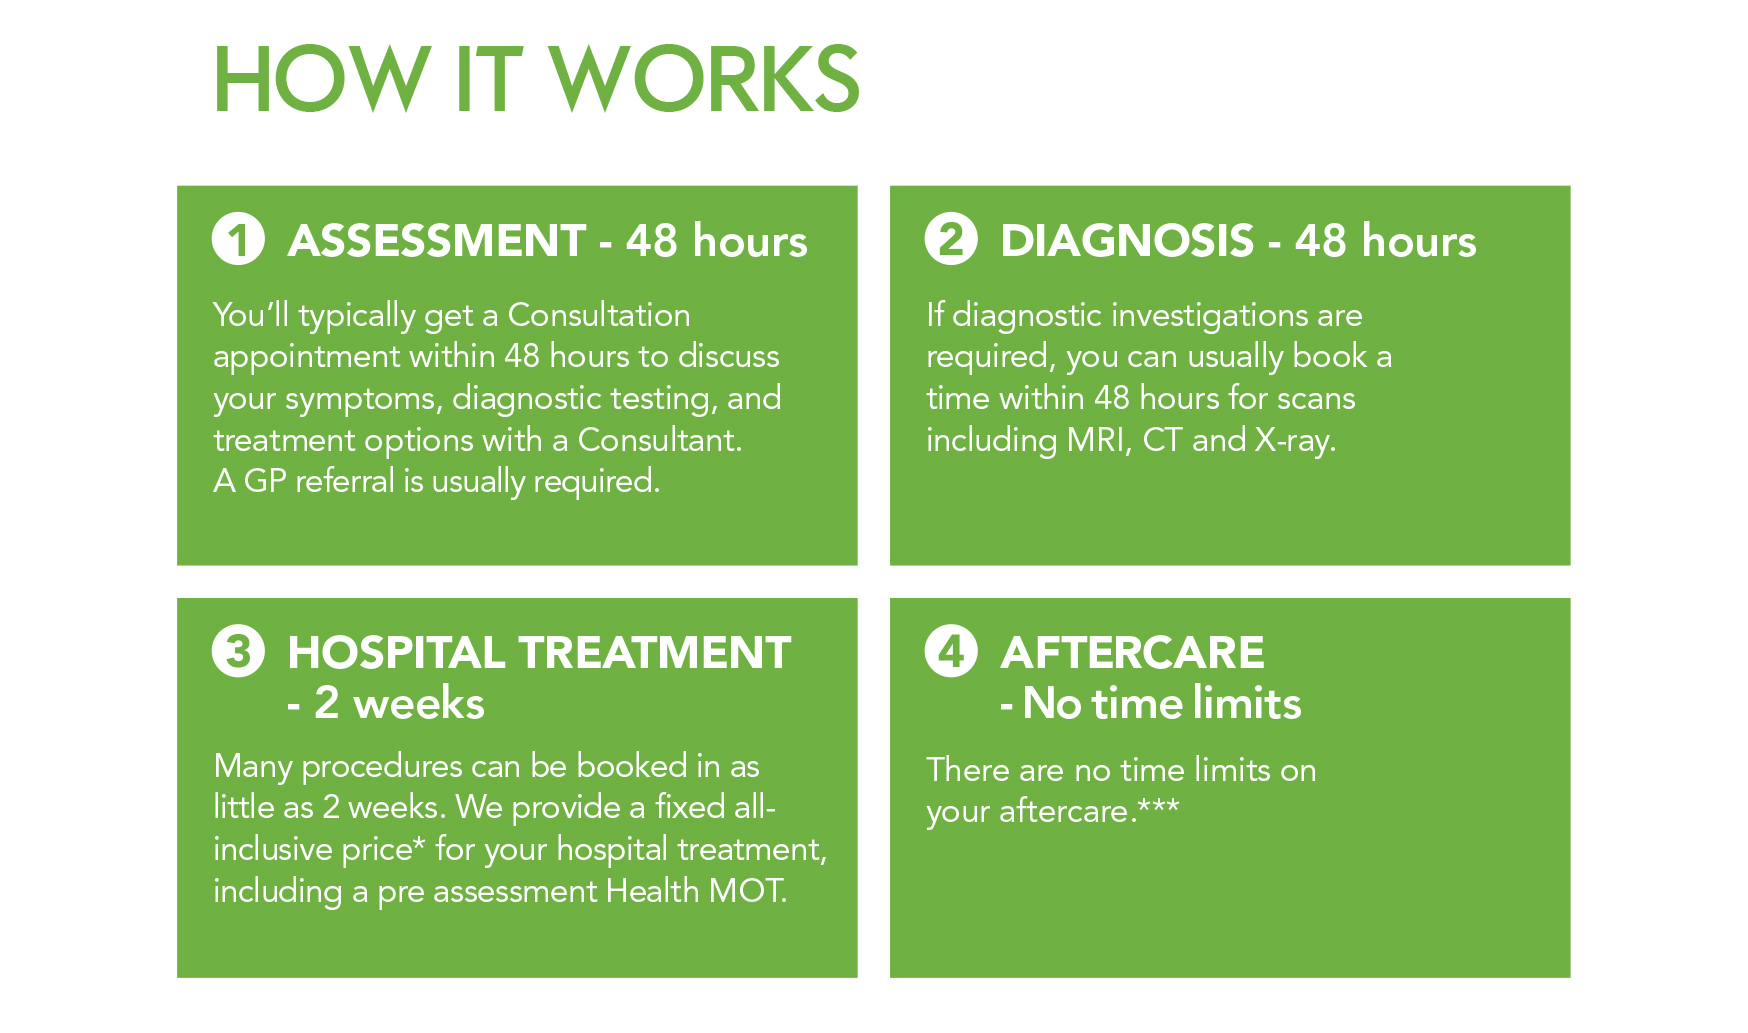 Paying for yourself works in 4 steps. Assessment, Diagnosis, Treatment and Aftercare